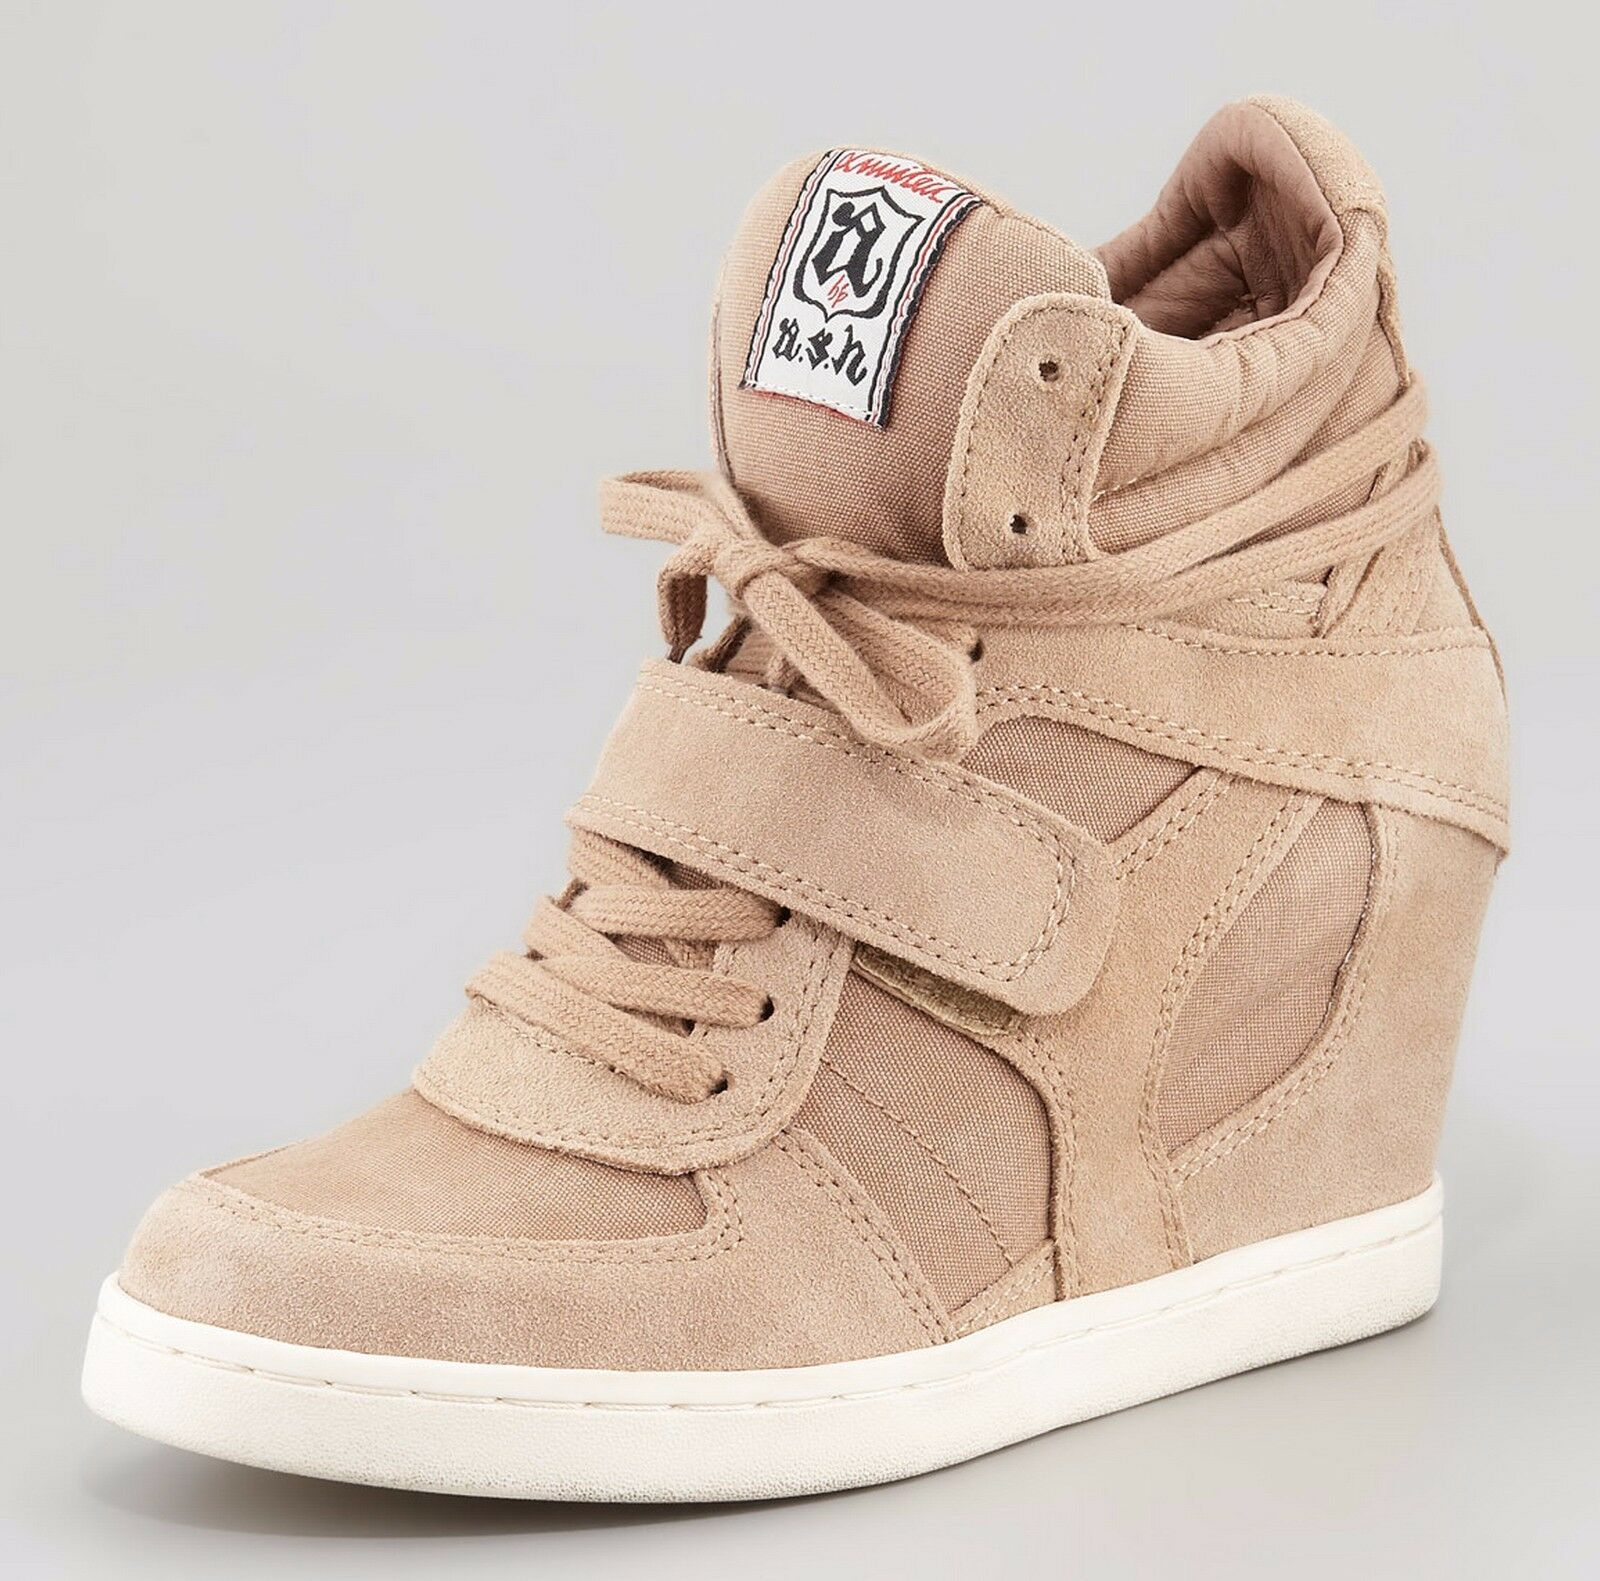 New with Box Ash COOL Suede Canvas Wedge Sneakers Shoes, CHAMOIS, ~$198